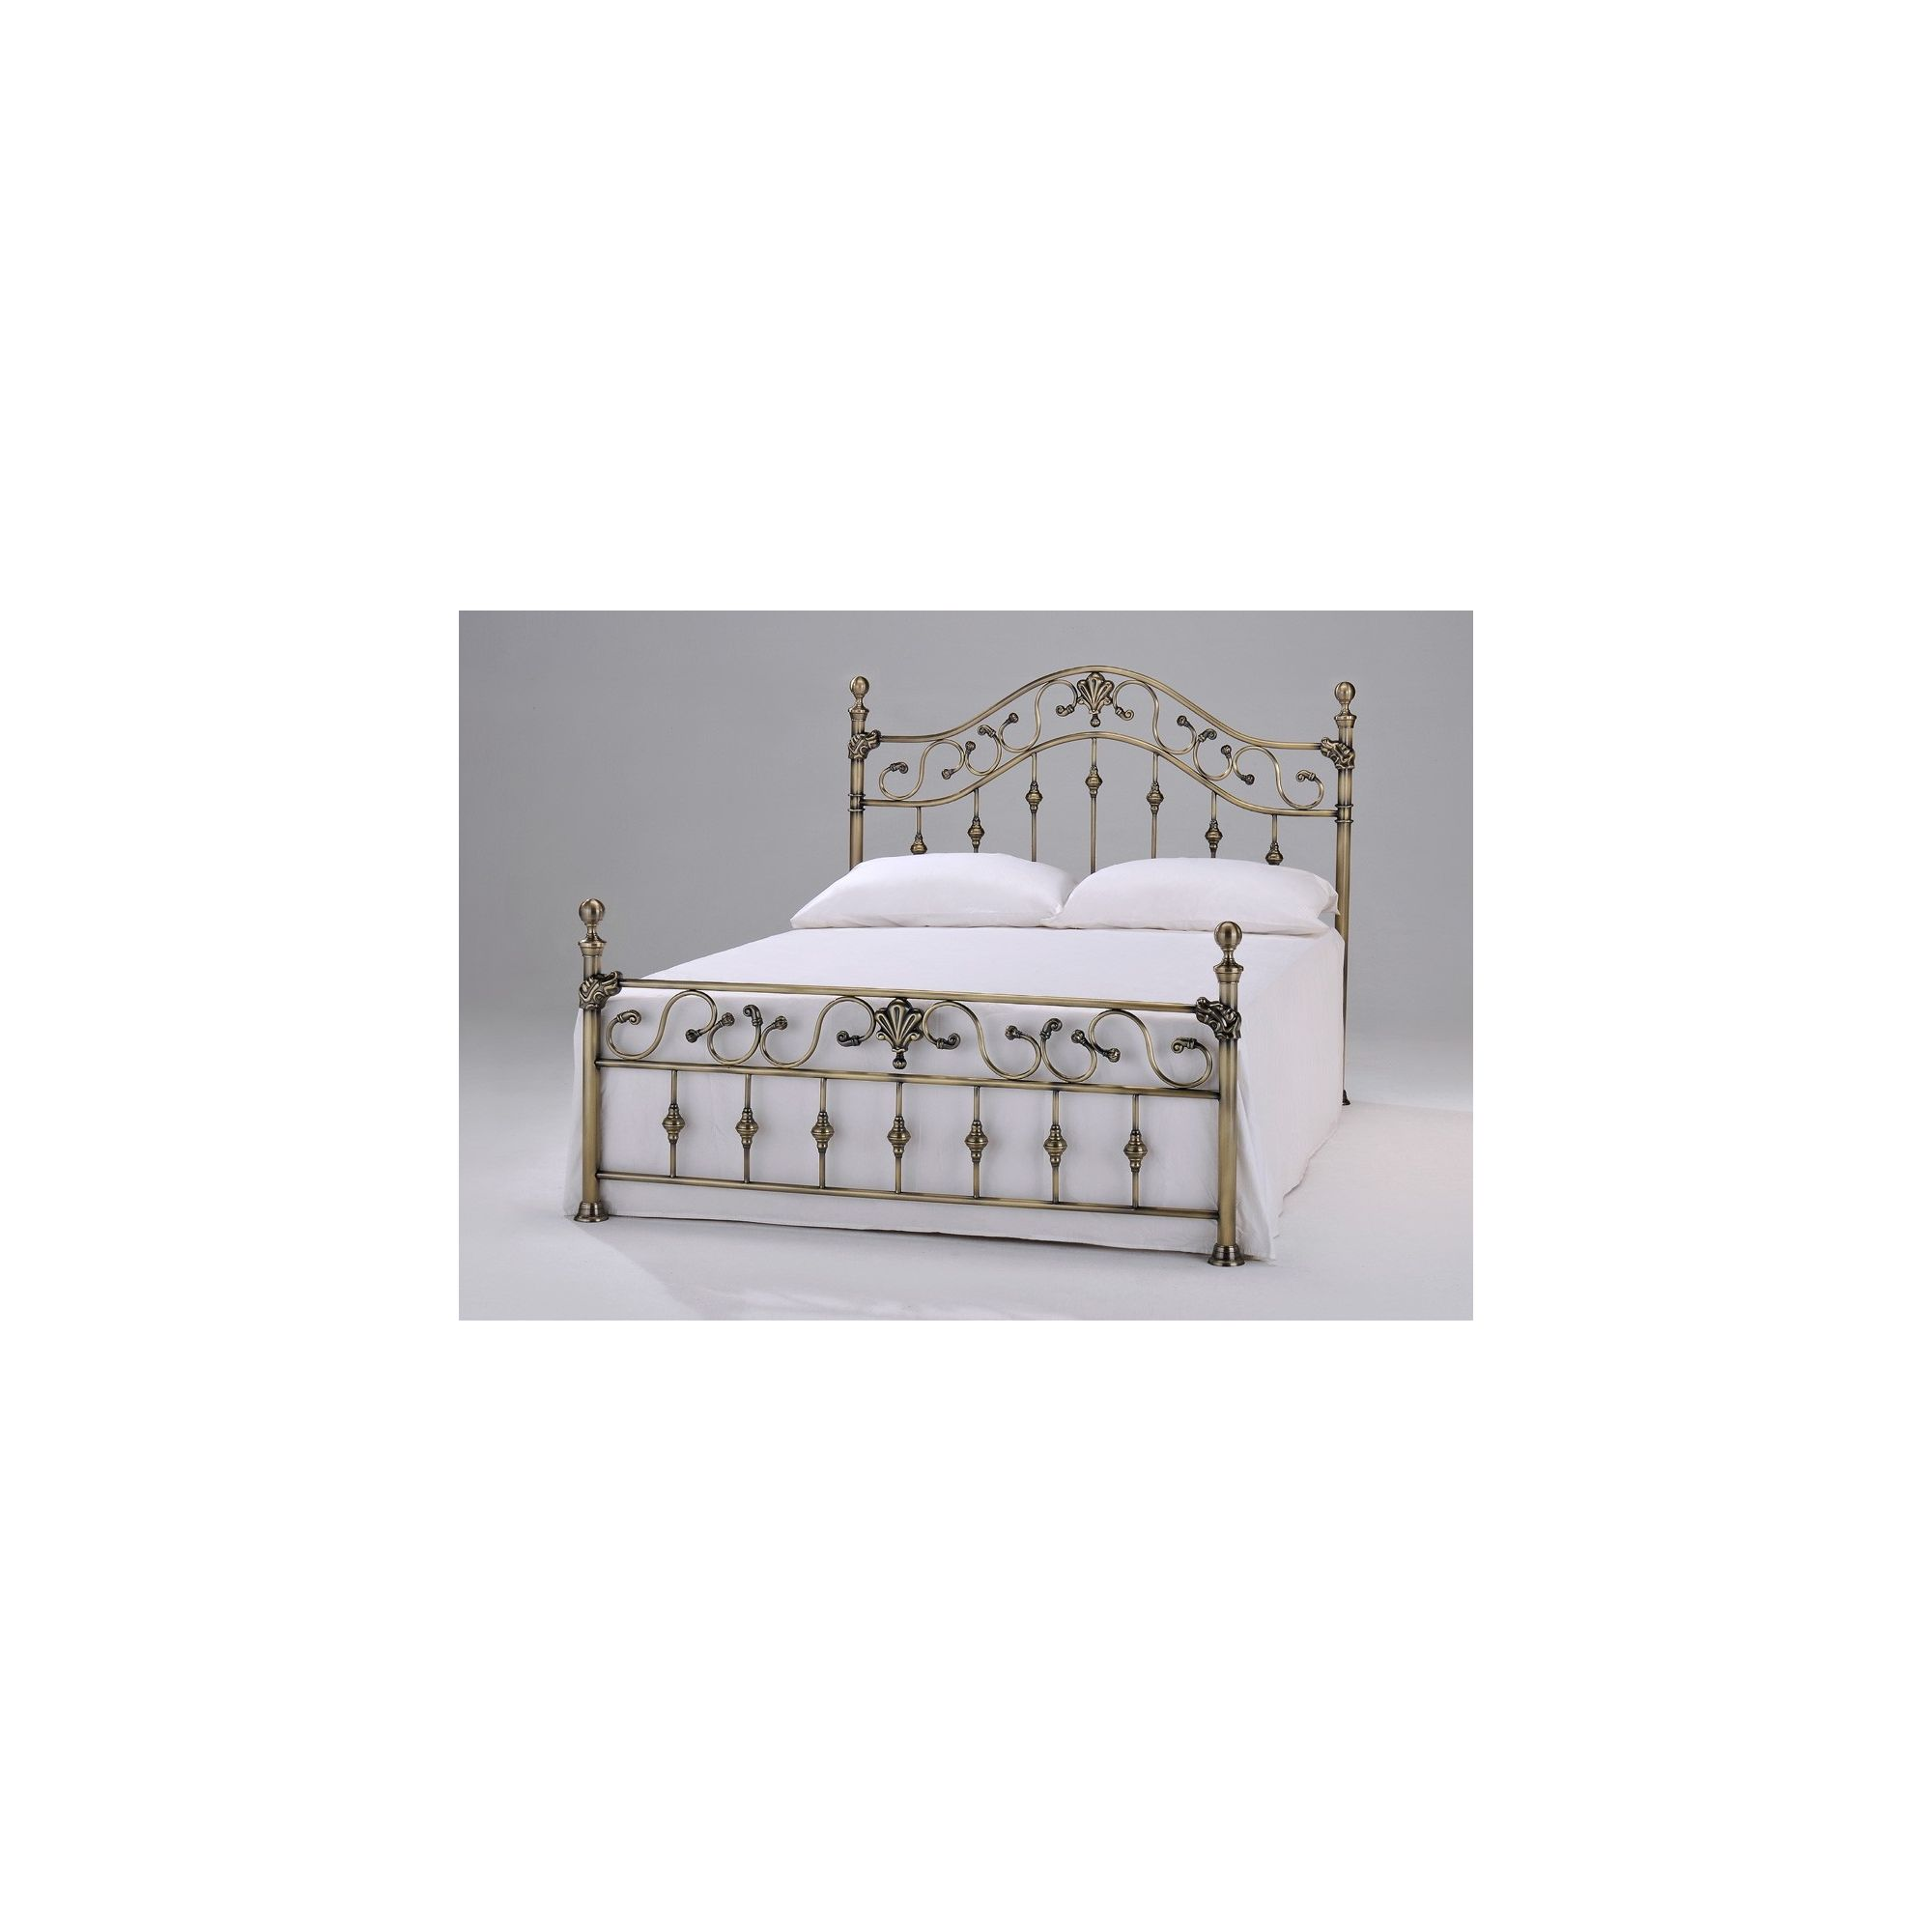 Interiors 2 suit Elizabeth Brass Bed - King - Brass at Tescos Direct